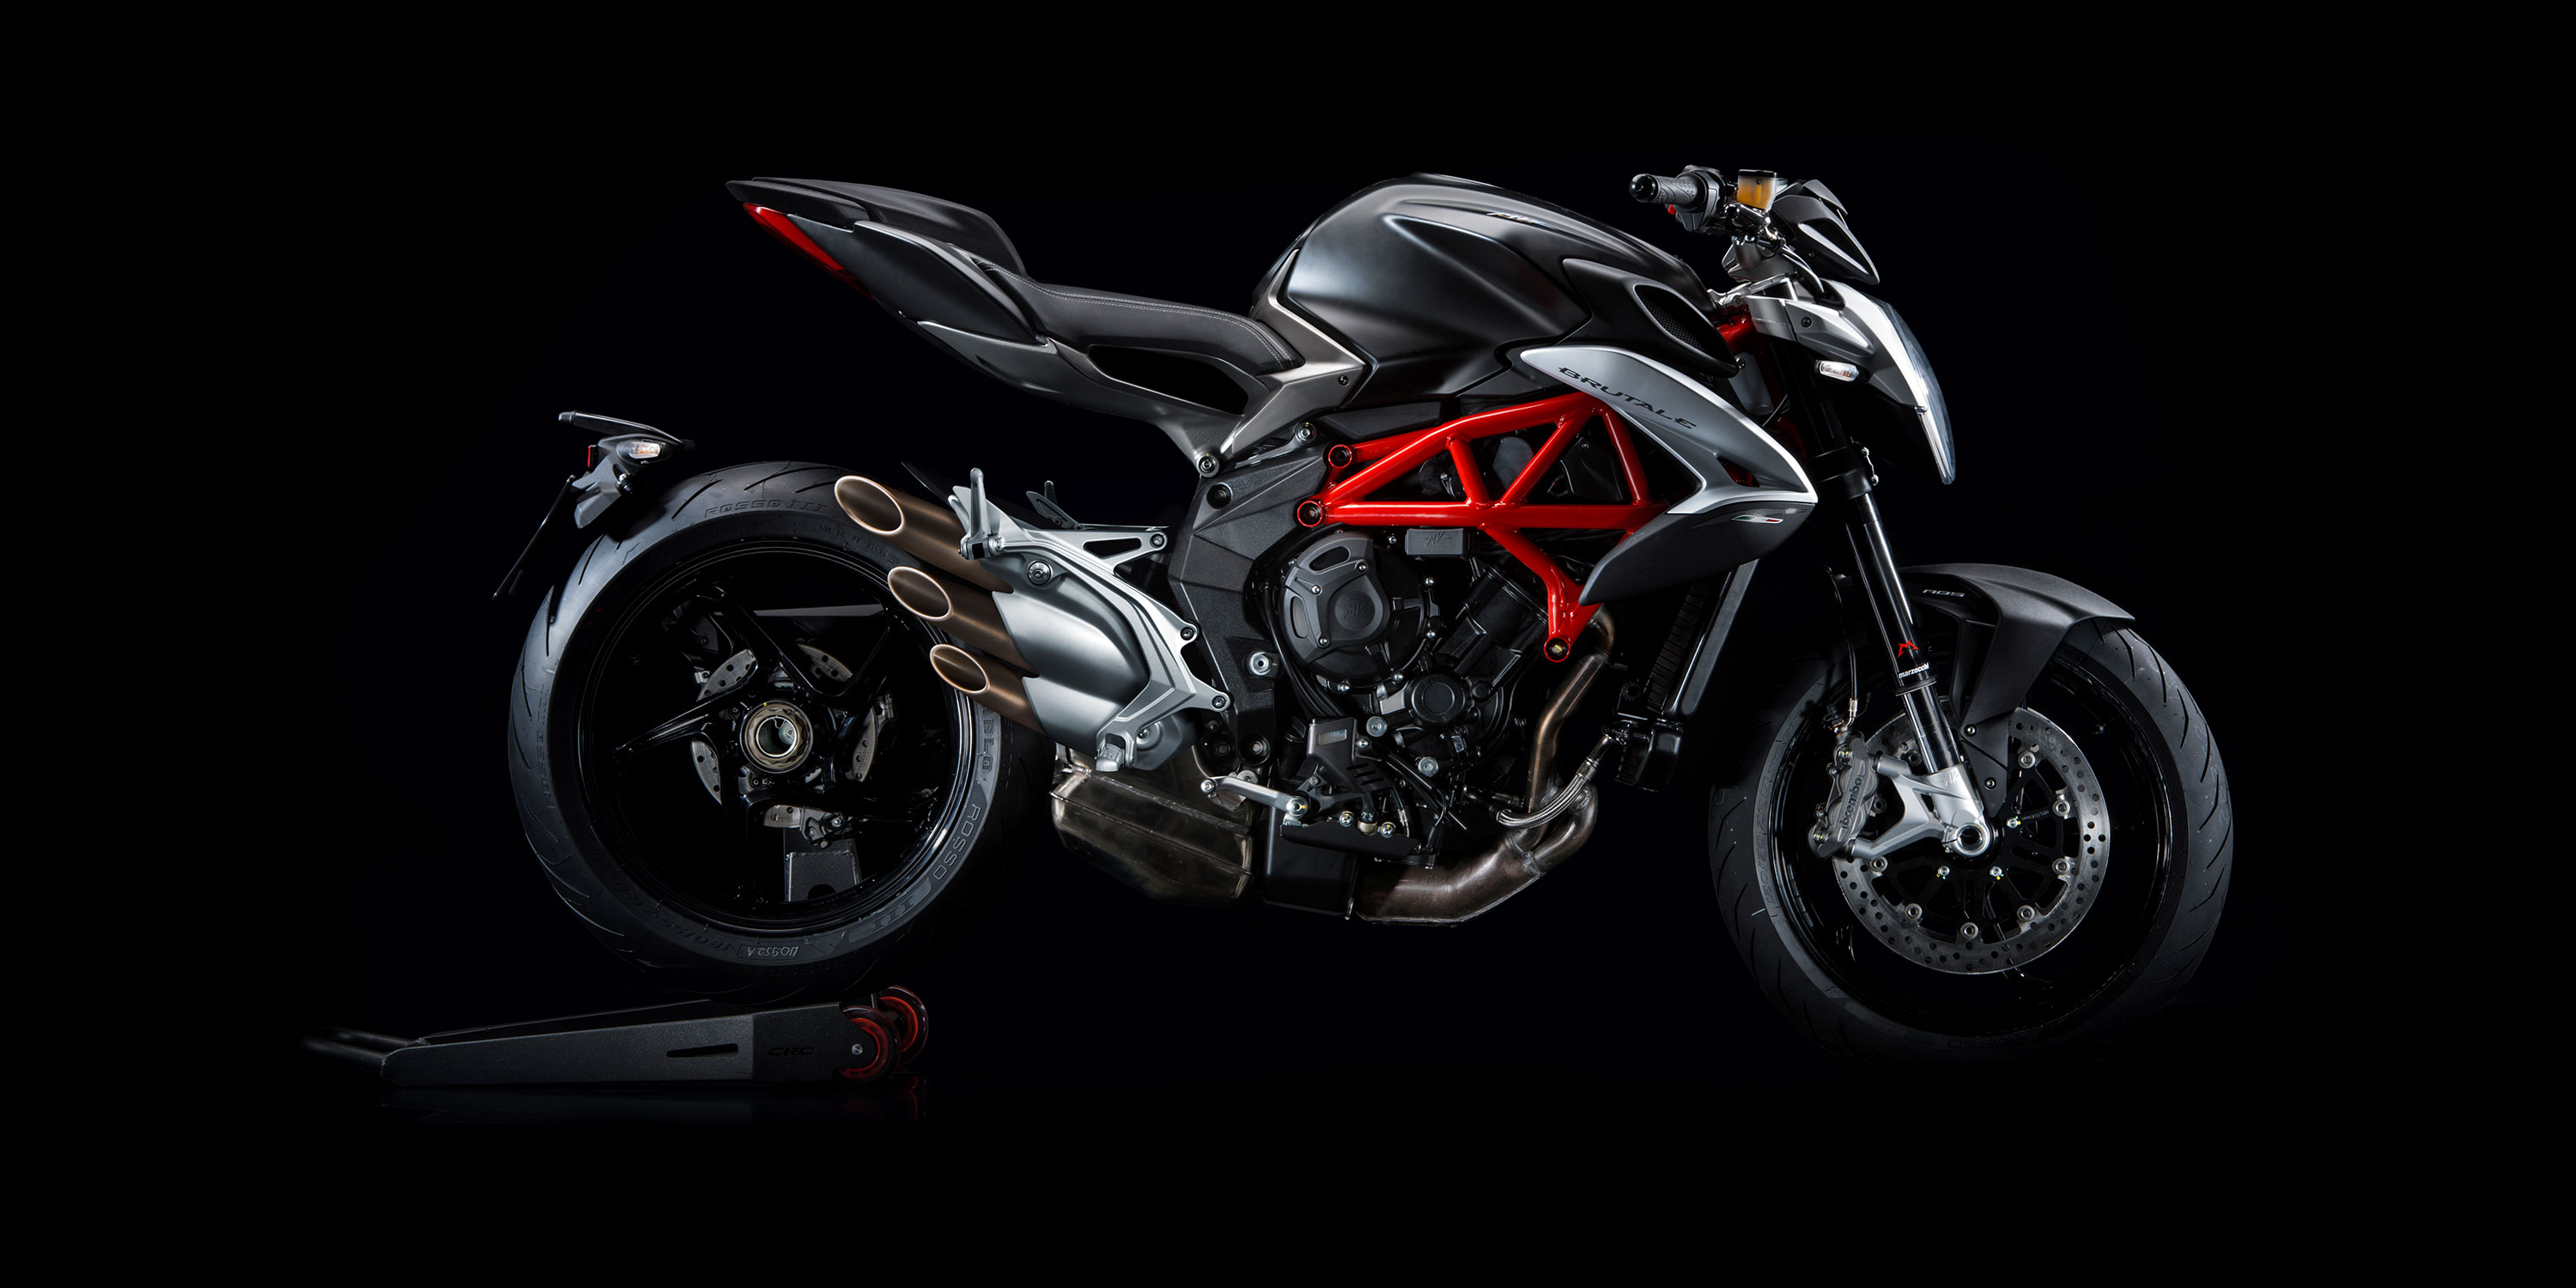 2016 MV Agusta Brutale 800, HD Bikes, 4k Wallpapers